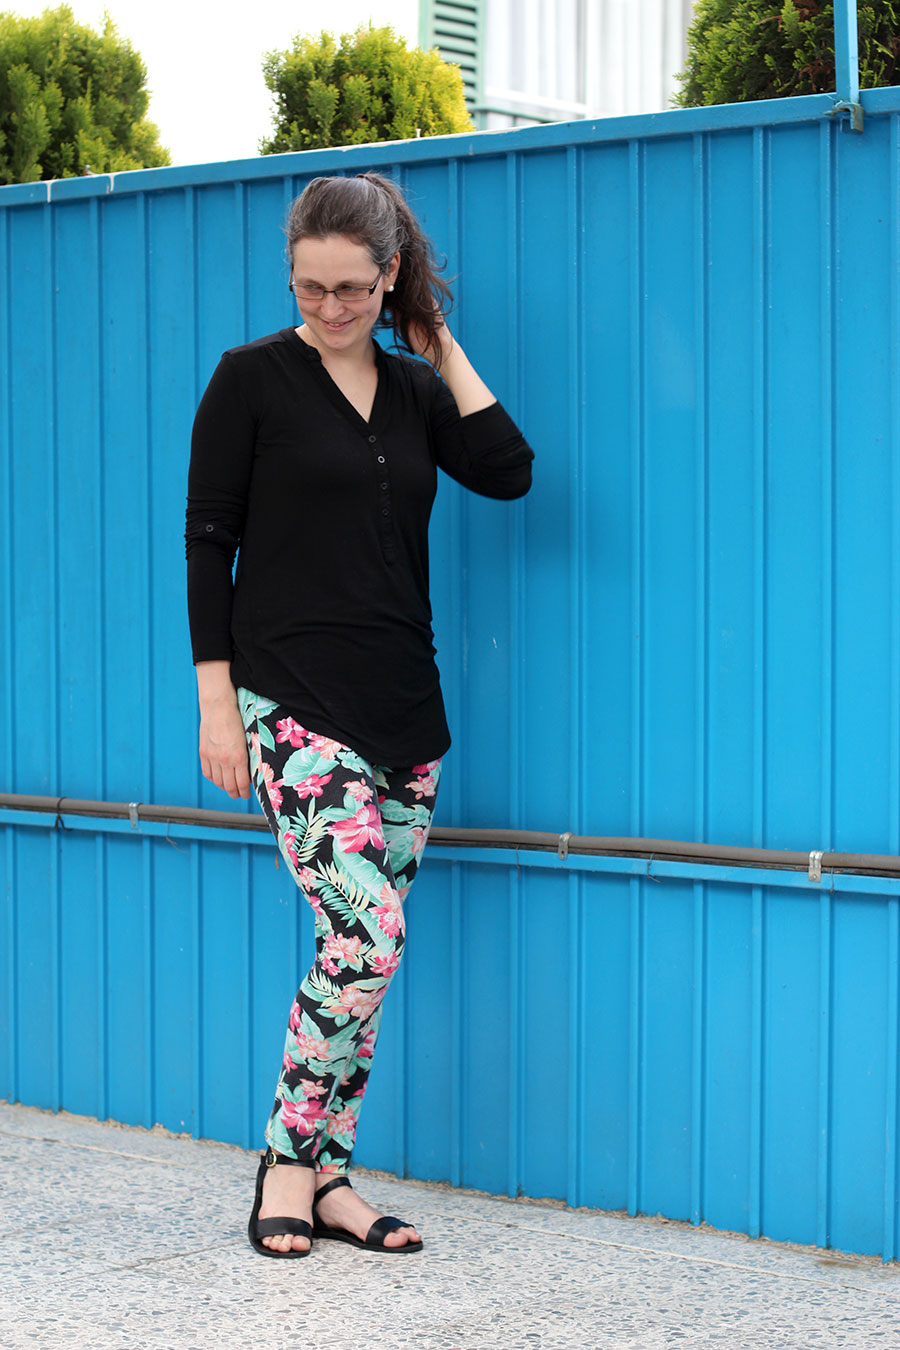 Julie Claveau of xfallenmoon wearing floral leggings, black shirt and Steve Madden sandals in black. Super comfortable outfit for a busy mom.